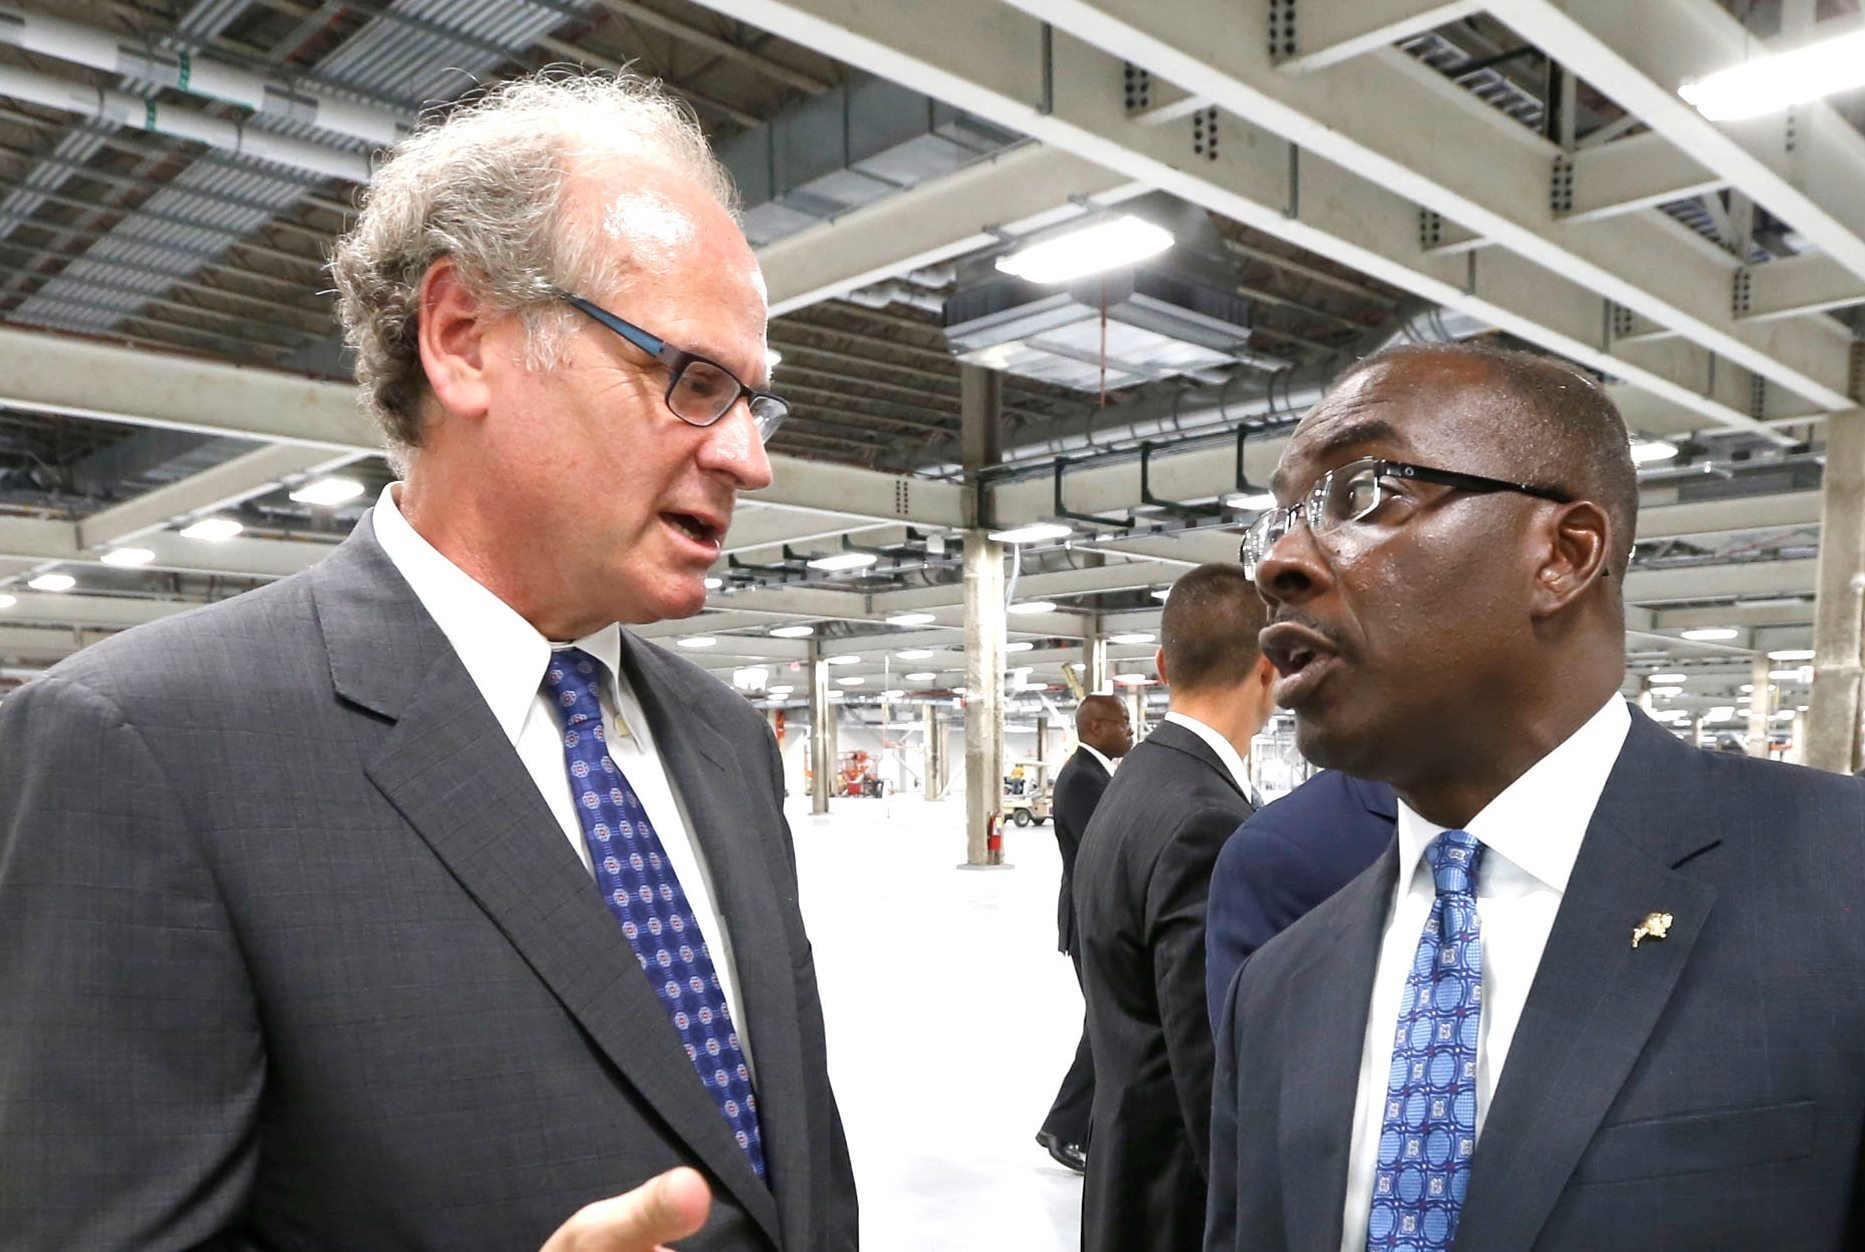 Empire State Development CEO Howard Zemsky and Buffalo Mayor Byron Brown speak during a tour of the SolarCity factory at RiverBend. (Robert Kirkham/Buffalo News)